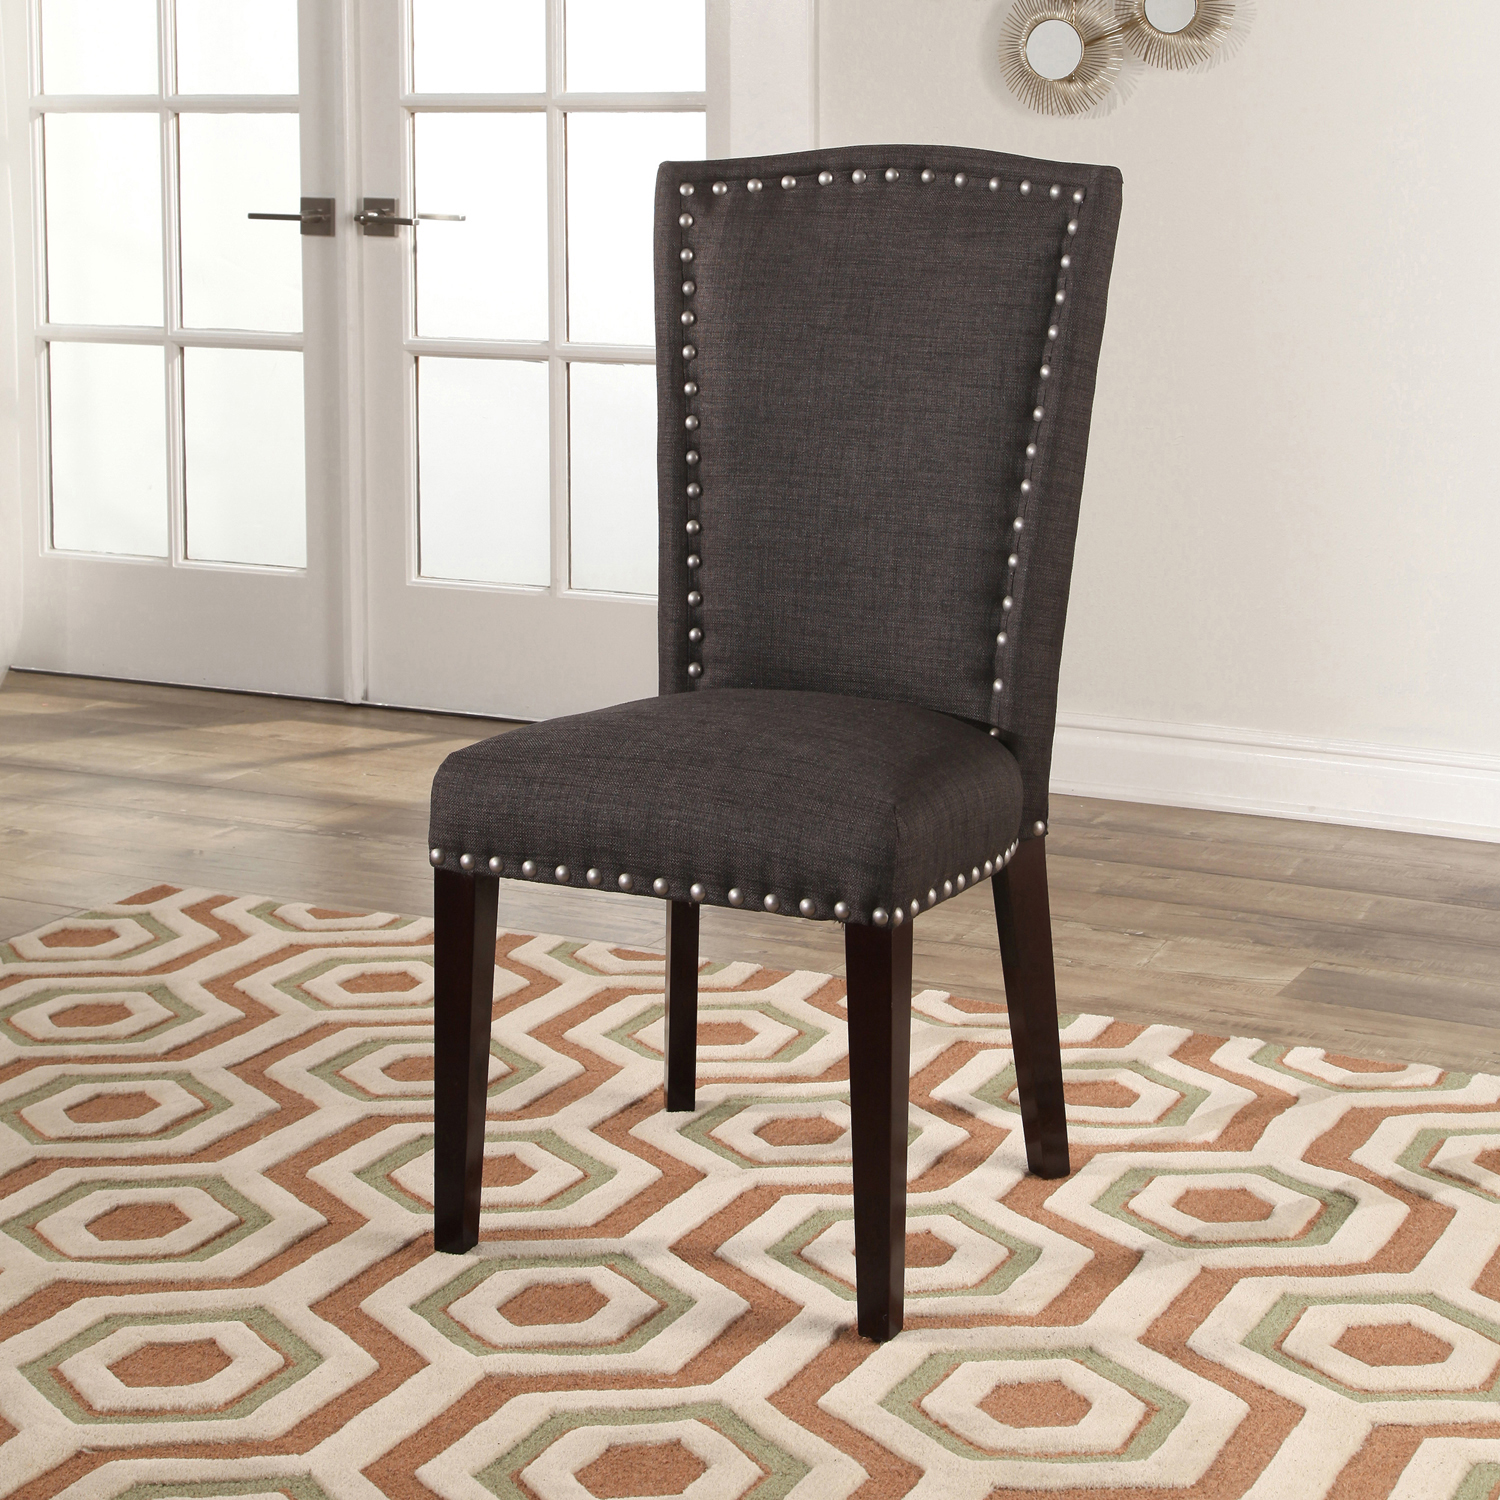 Michael Charcoal Gray Dining Chair